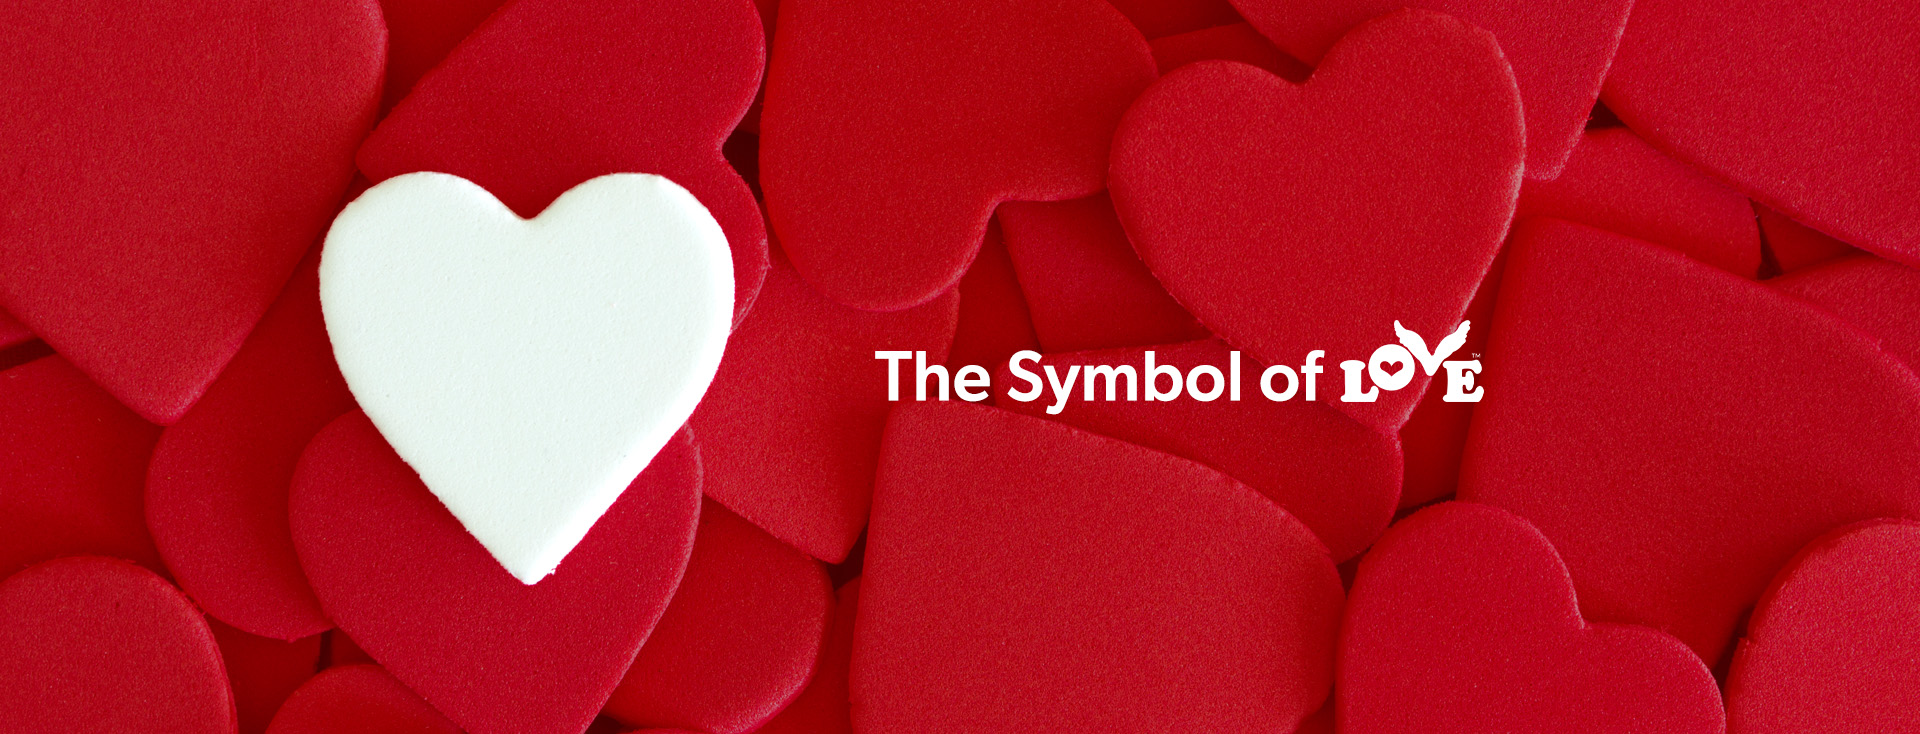 The Symbol of Love